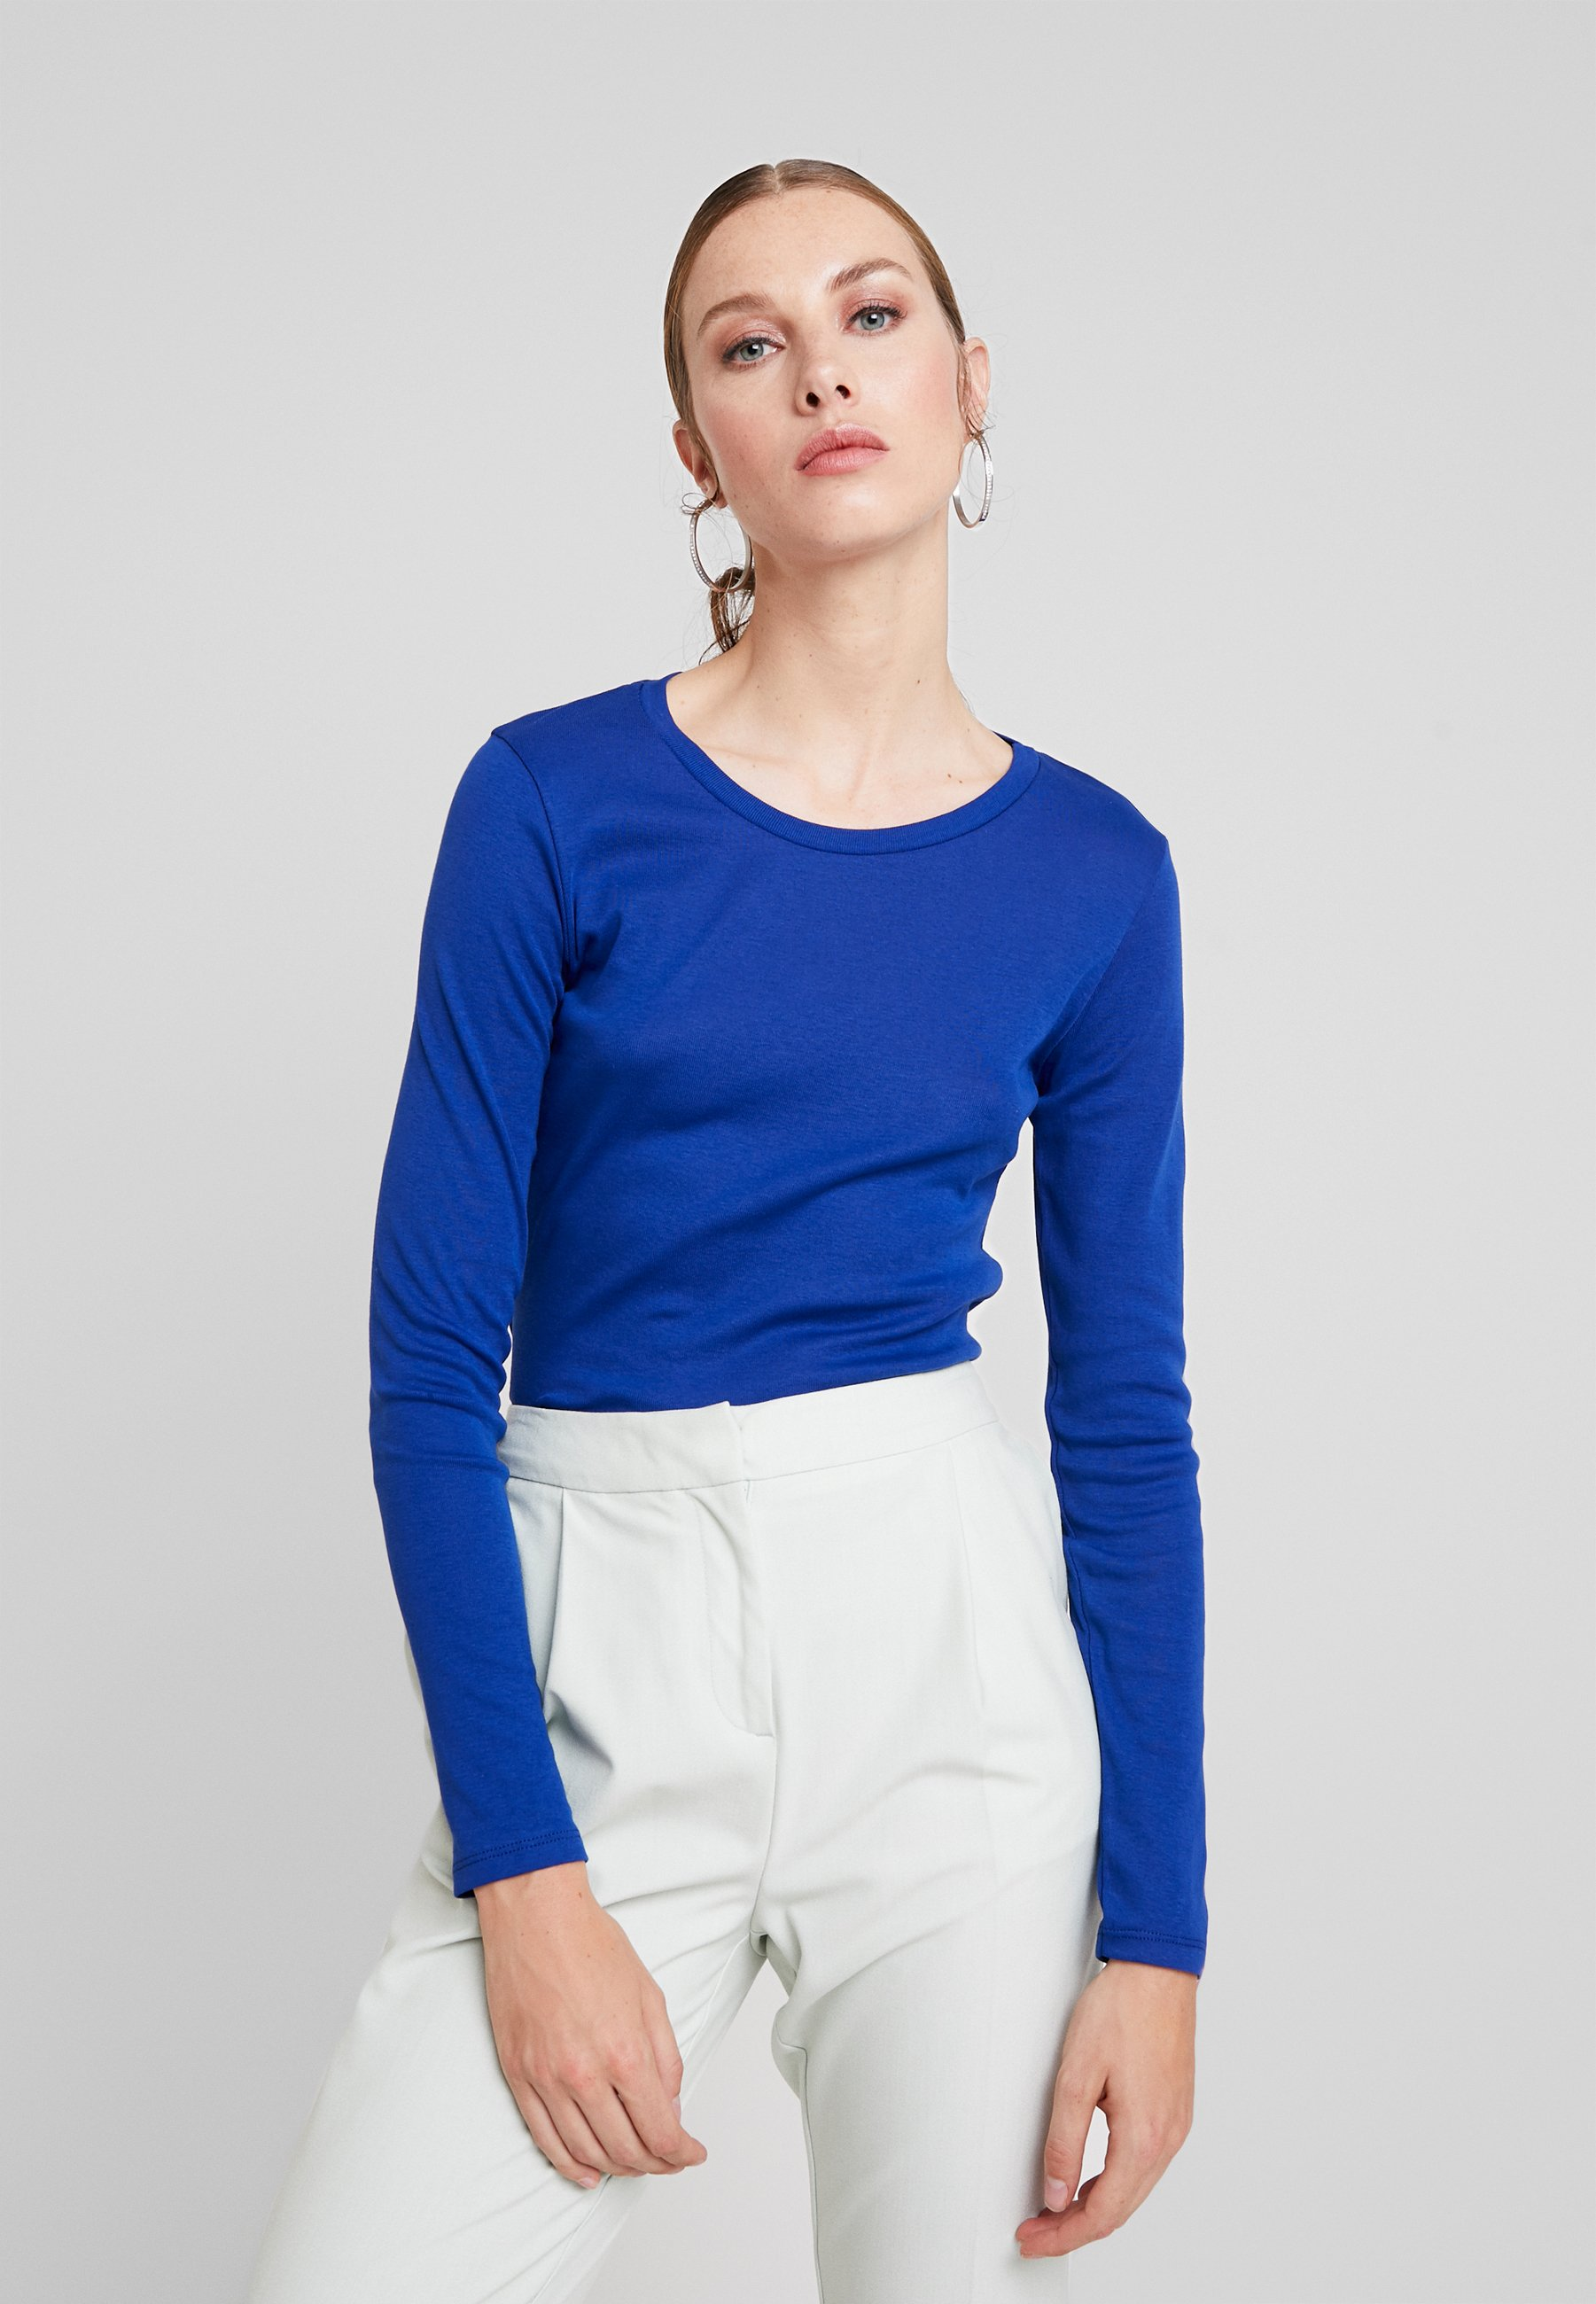 Benetton NeckT Dark Round shirt À Manches Longues Blue Y76gybIfvm